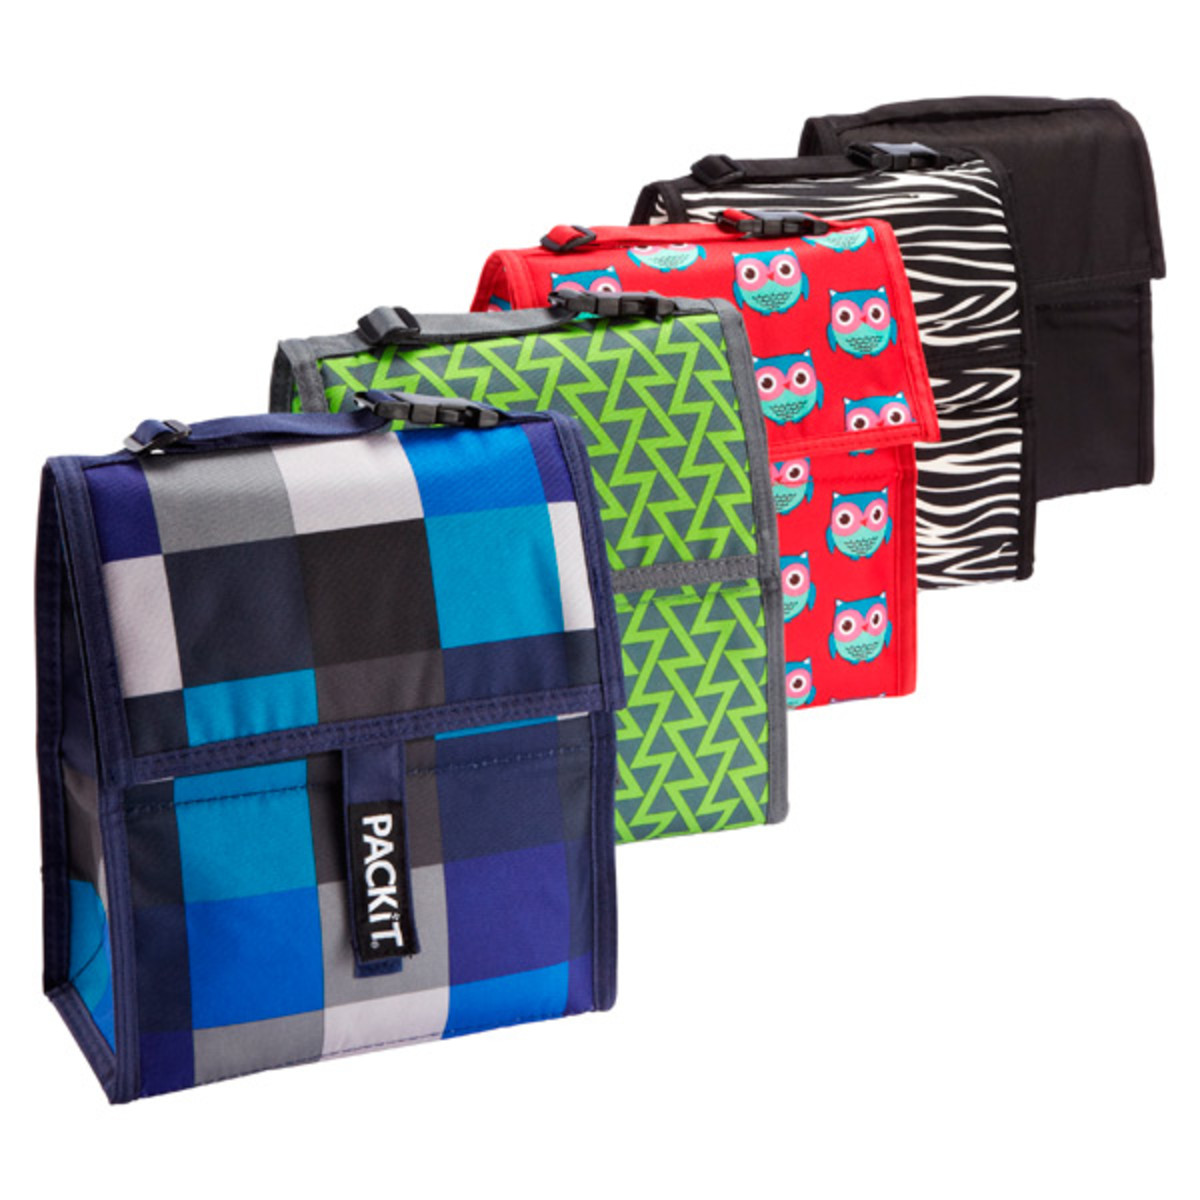 Available in over 40 different styles and color combinations. From wine coolers to shopping bags PackIt offers a cool solution for all your lunch needs.